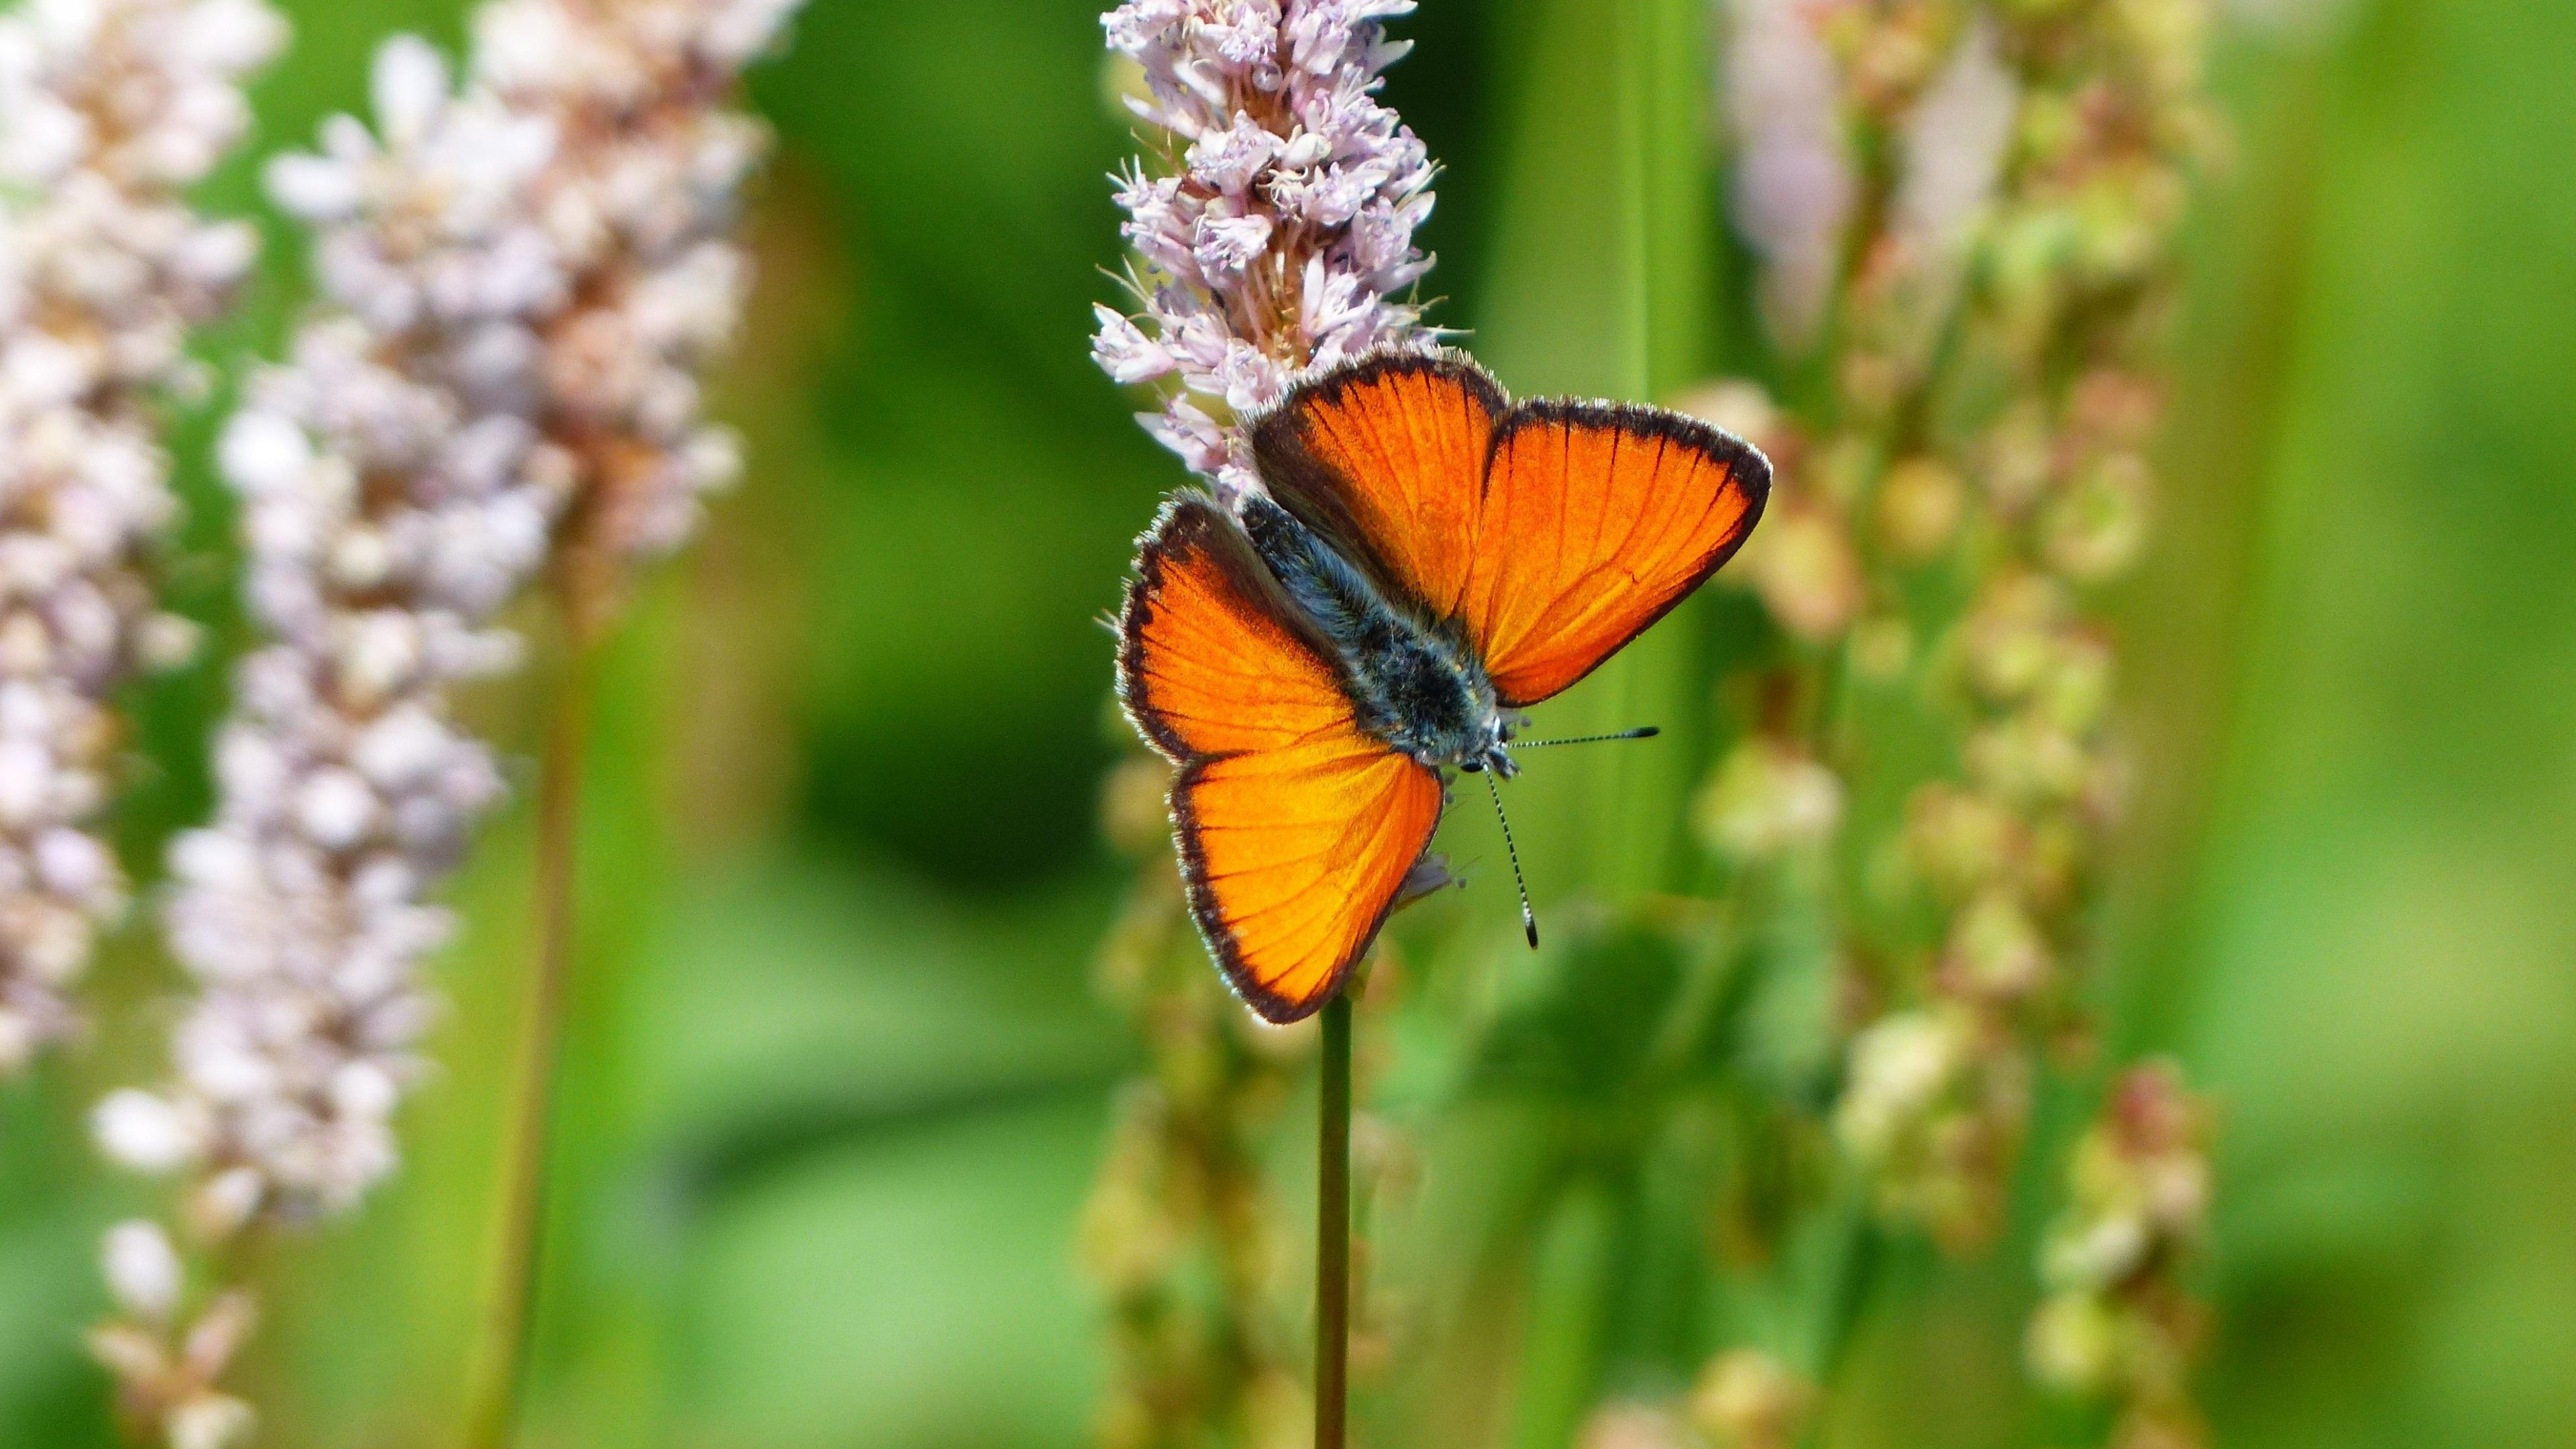 Aninimal Book: Orange Butterfly Wallpaper - iPhone, Android & Desktop ...